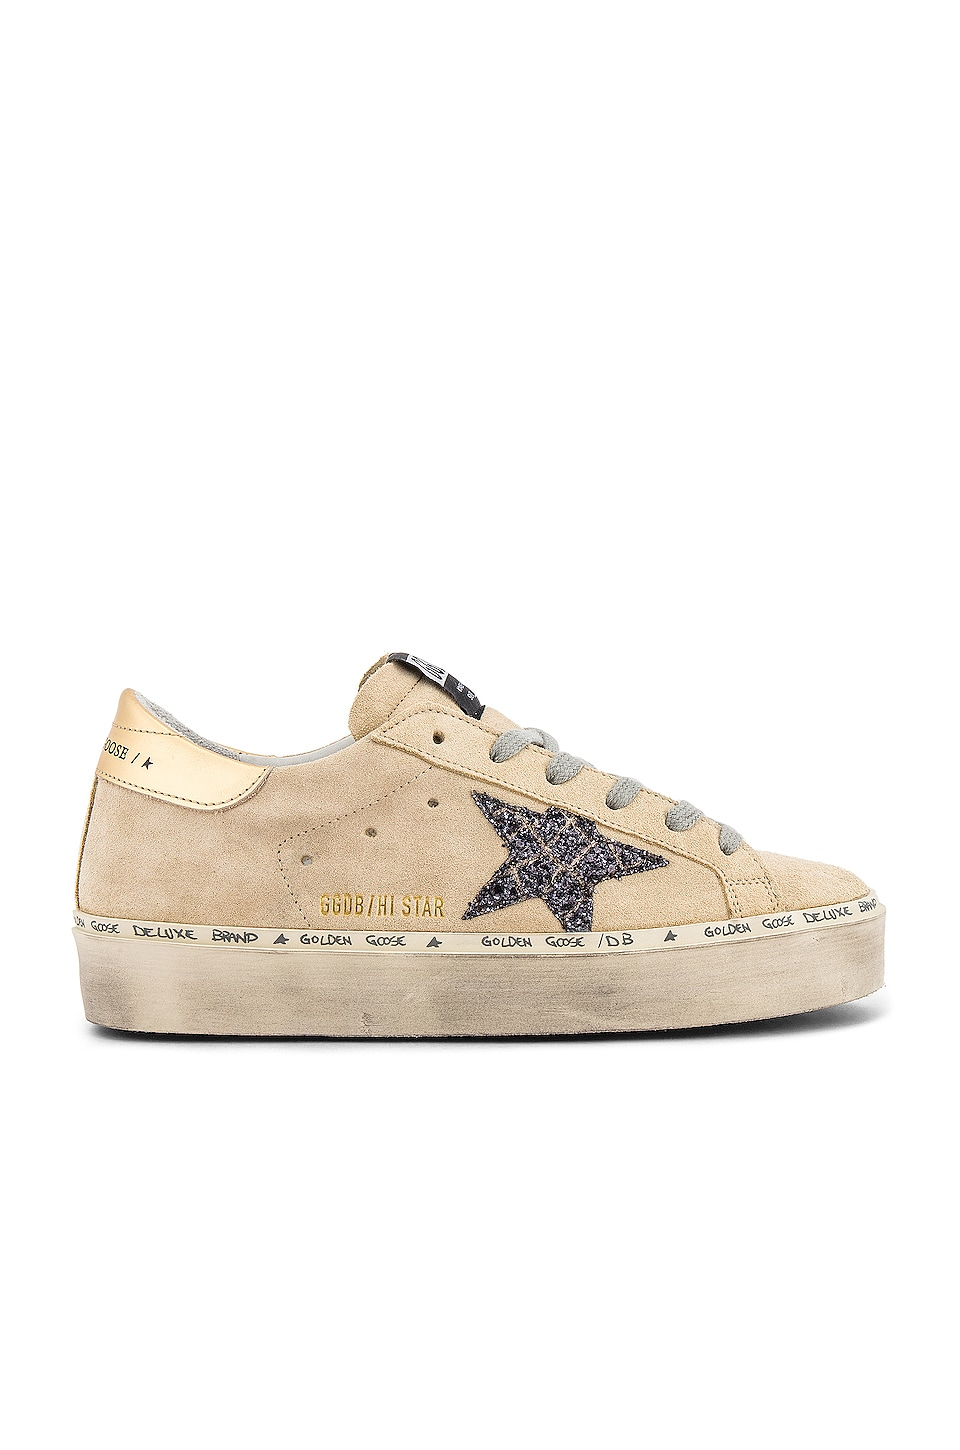 Golden Goose Hi Star Sneaker in Pearl Suede & Cocco Glitter Star